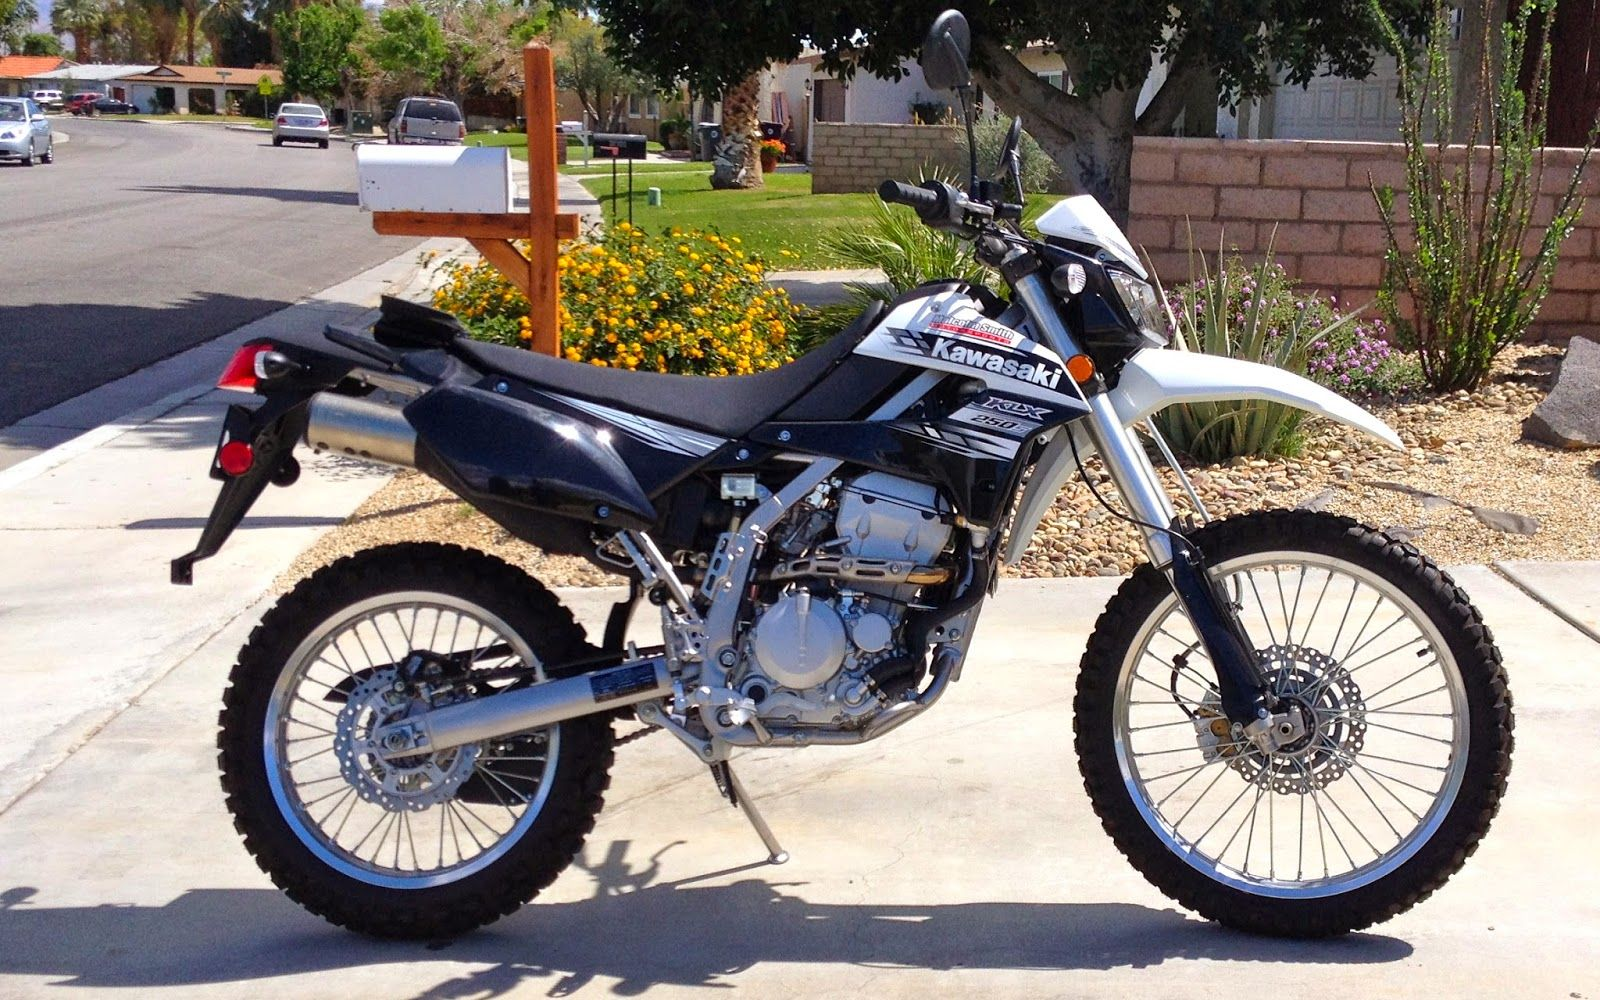 Kawasaki KLX250s: Getting to Know My Kawasaki KLX 250s; First ride